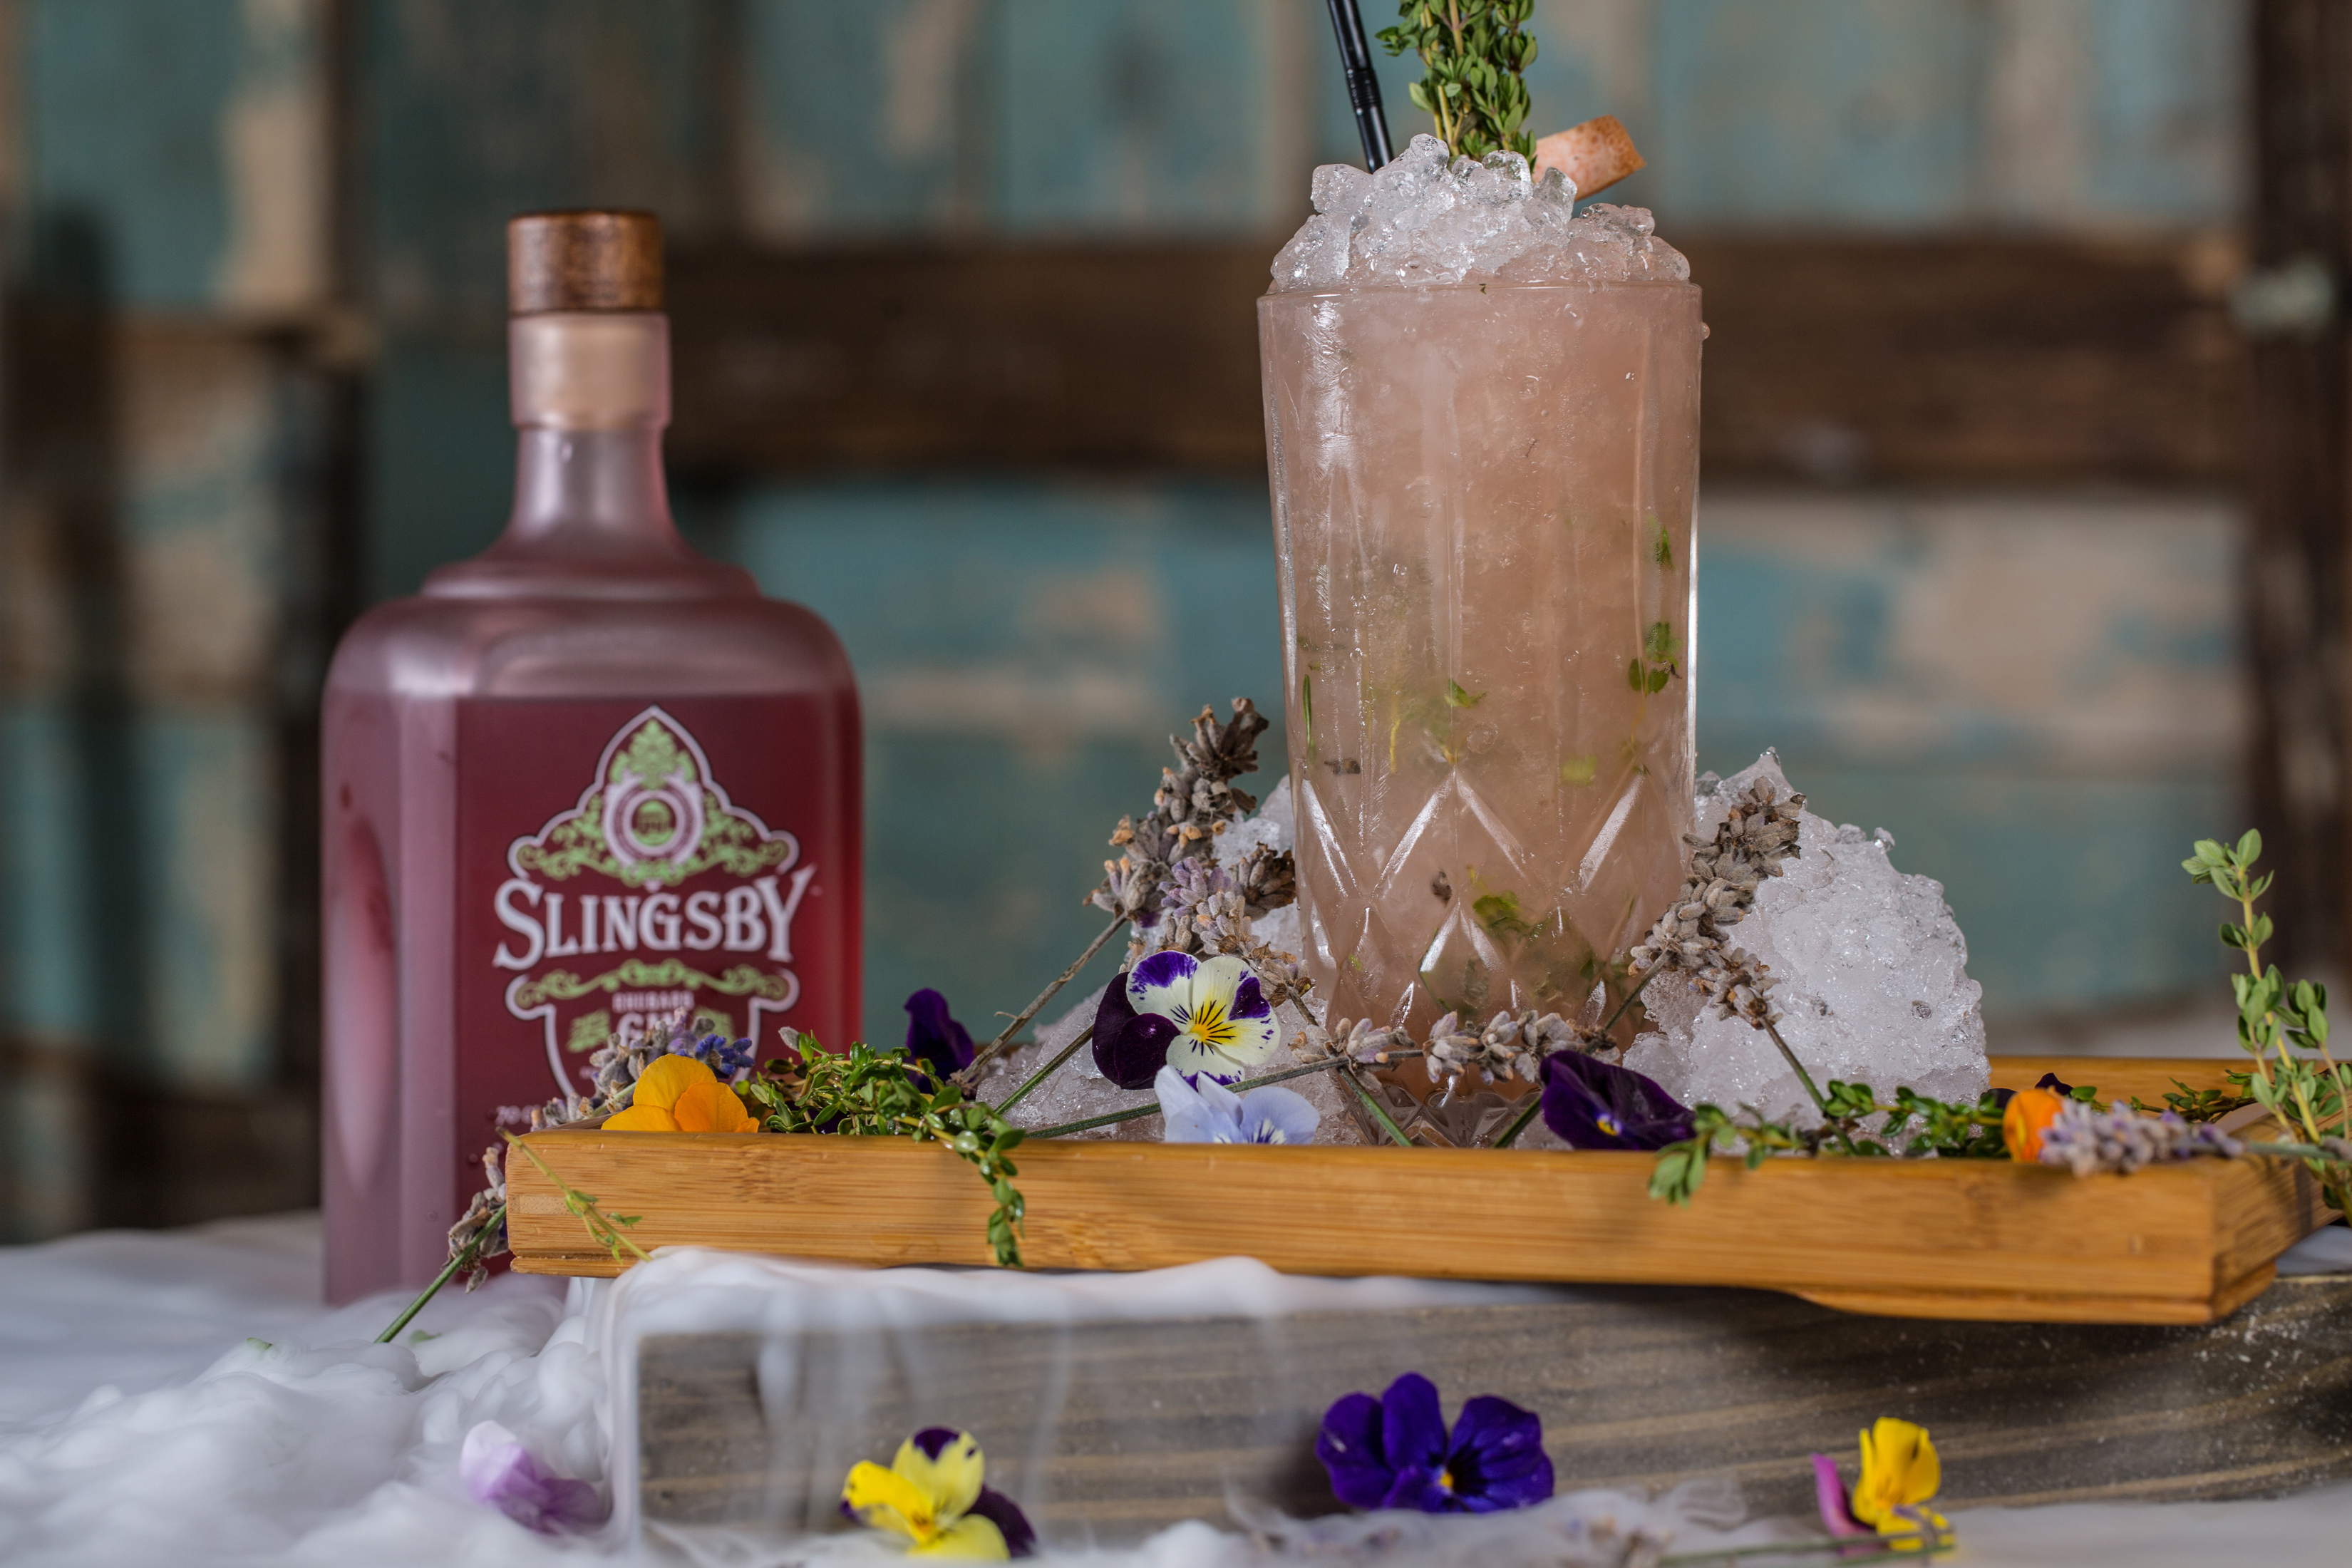 cocktail photograph with slingsby gin and dry ice.